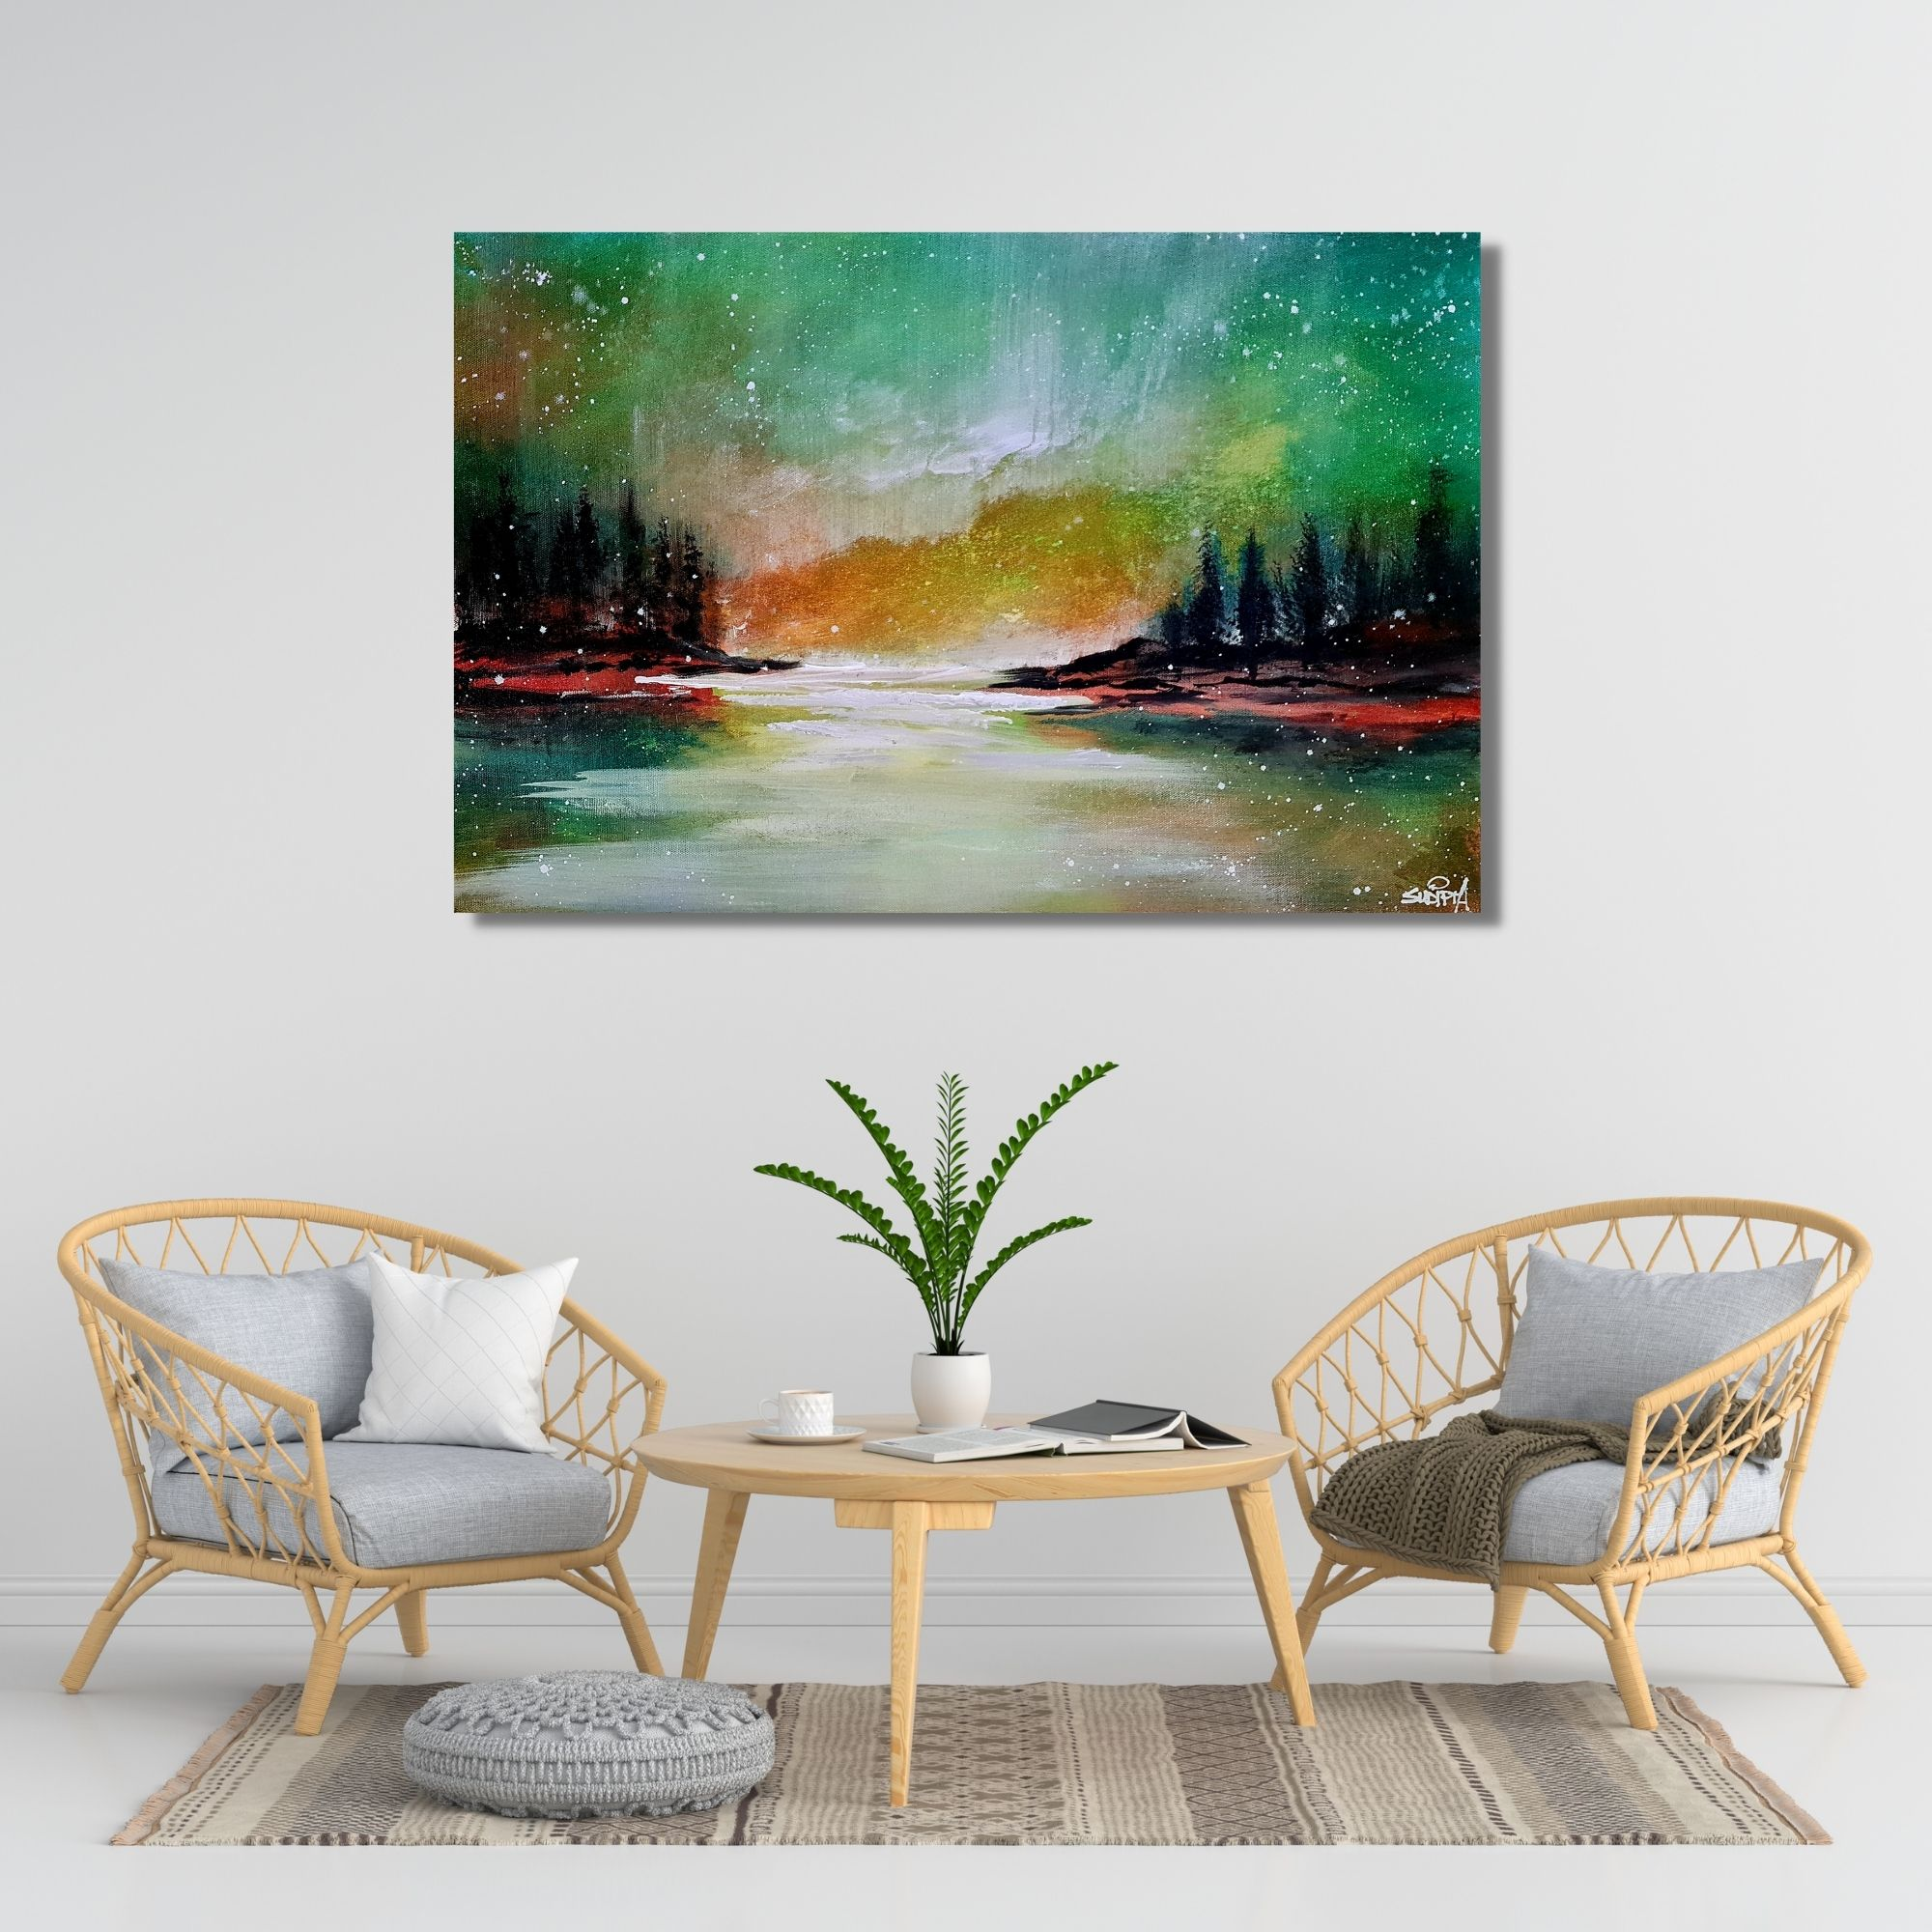 Light In The Sky - Acrylic on canvas - 16-24 inches